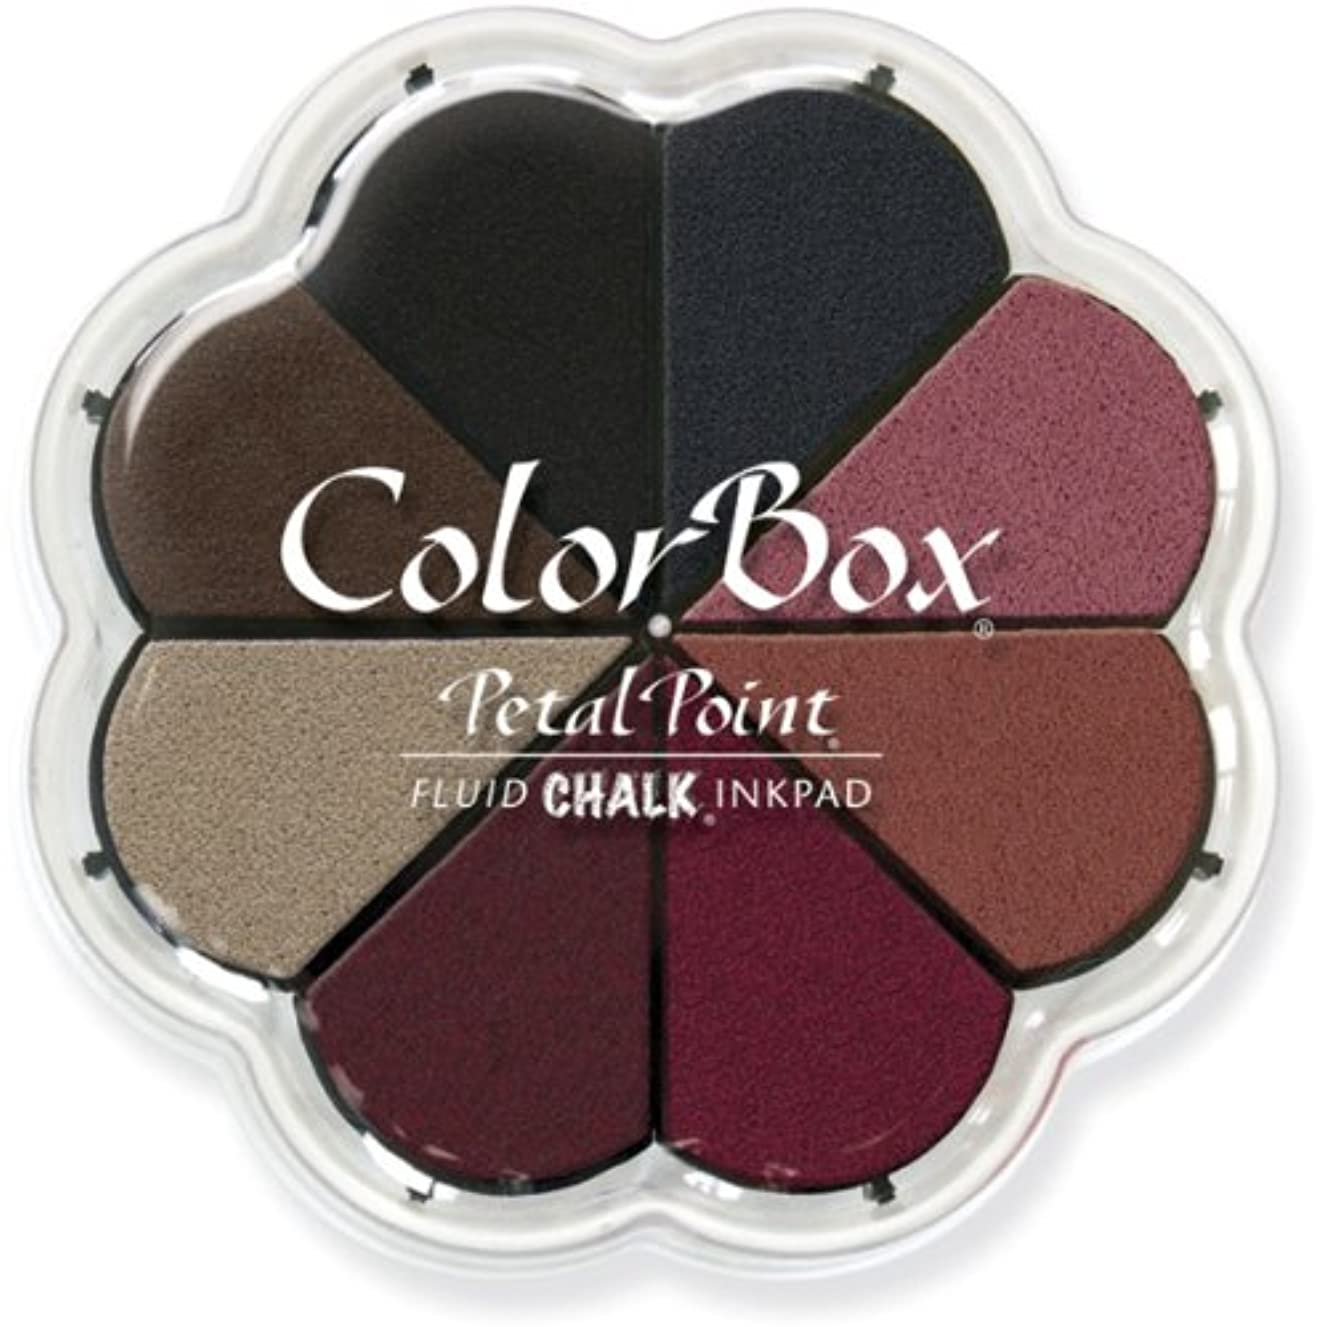 CLEARSNAP Colorbox Fluid Chalk Petal Point Option Inkpad, Nightfall, 8 Colors Per Pad